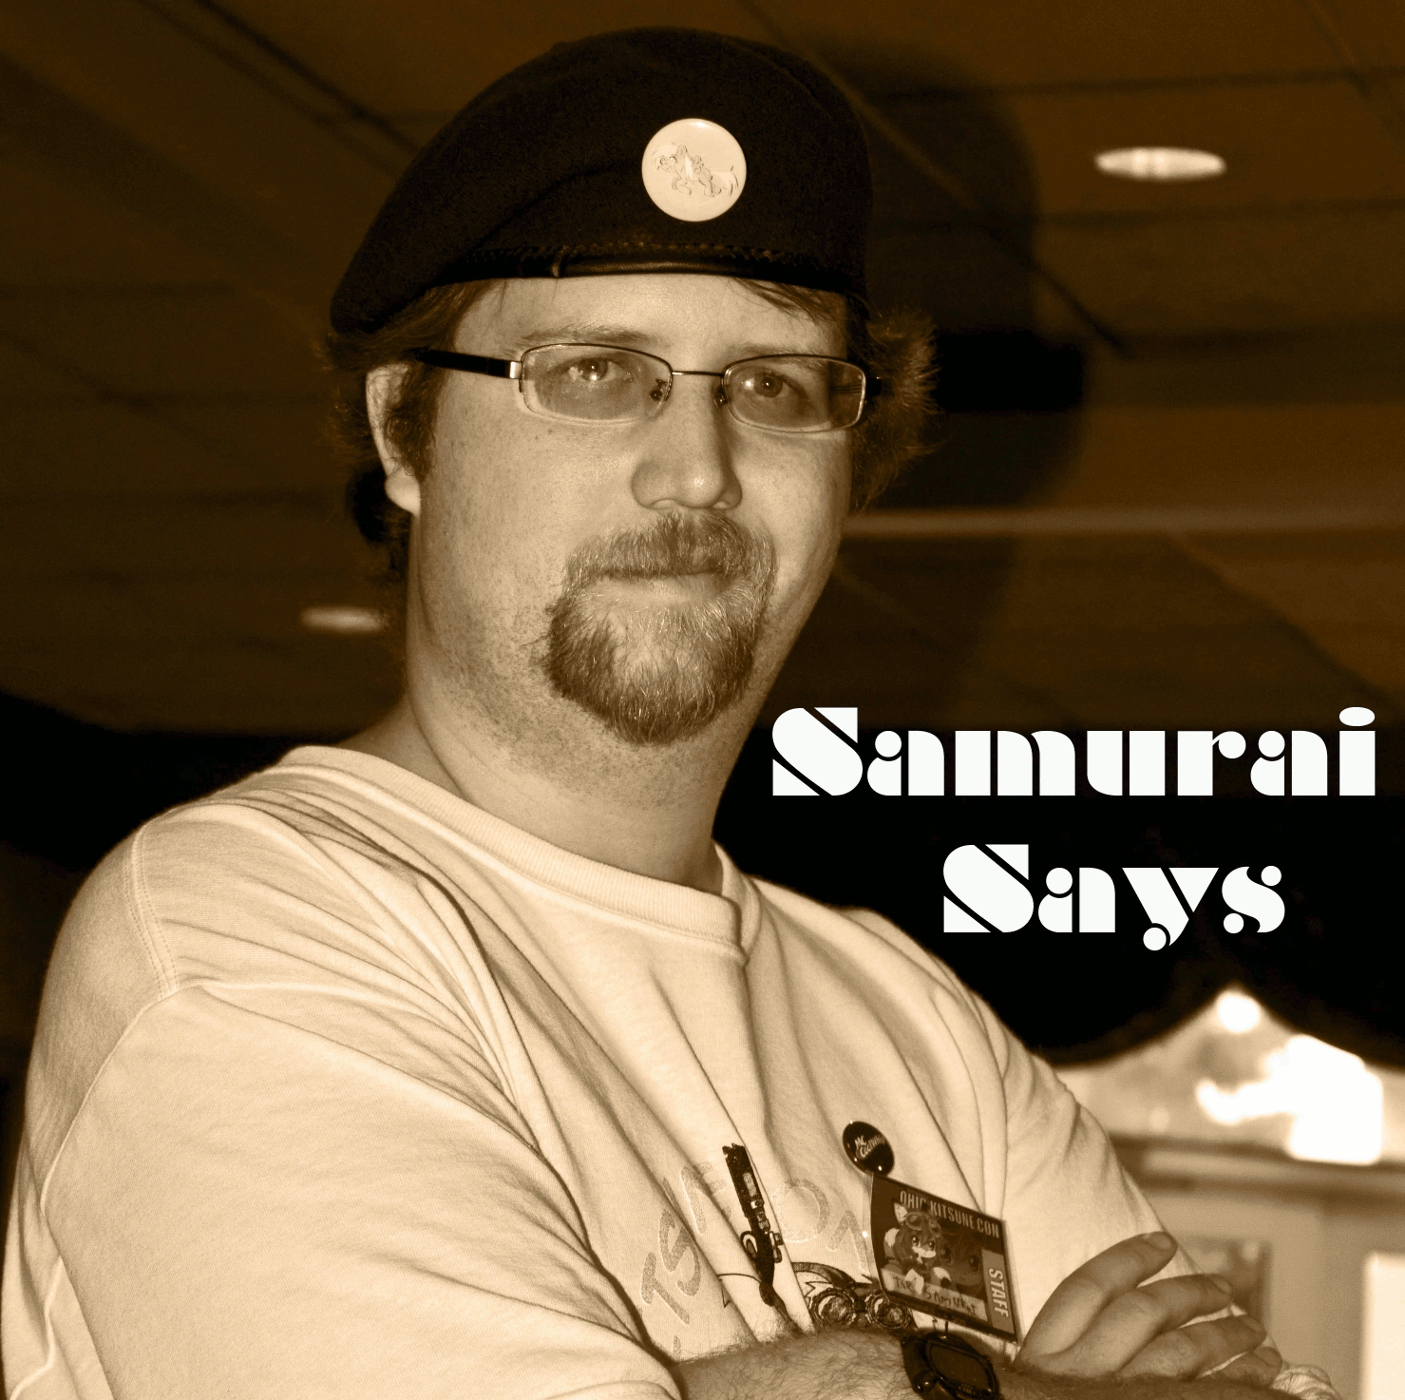 Samurai Says!